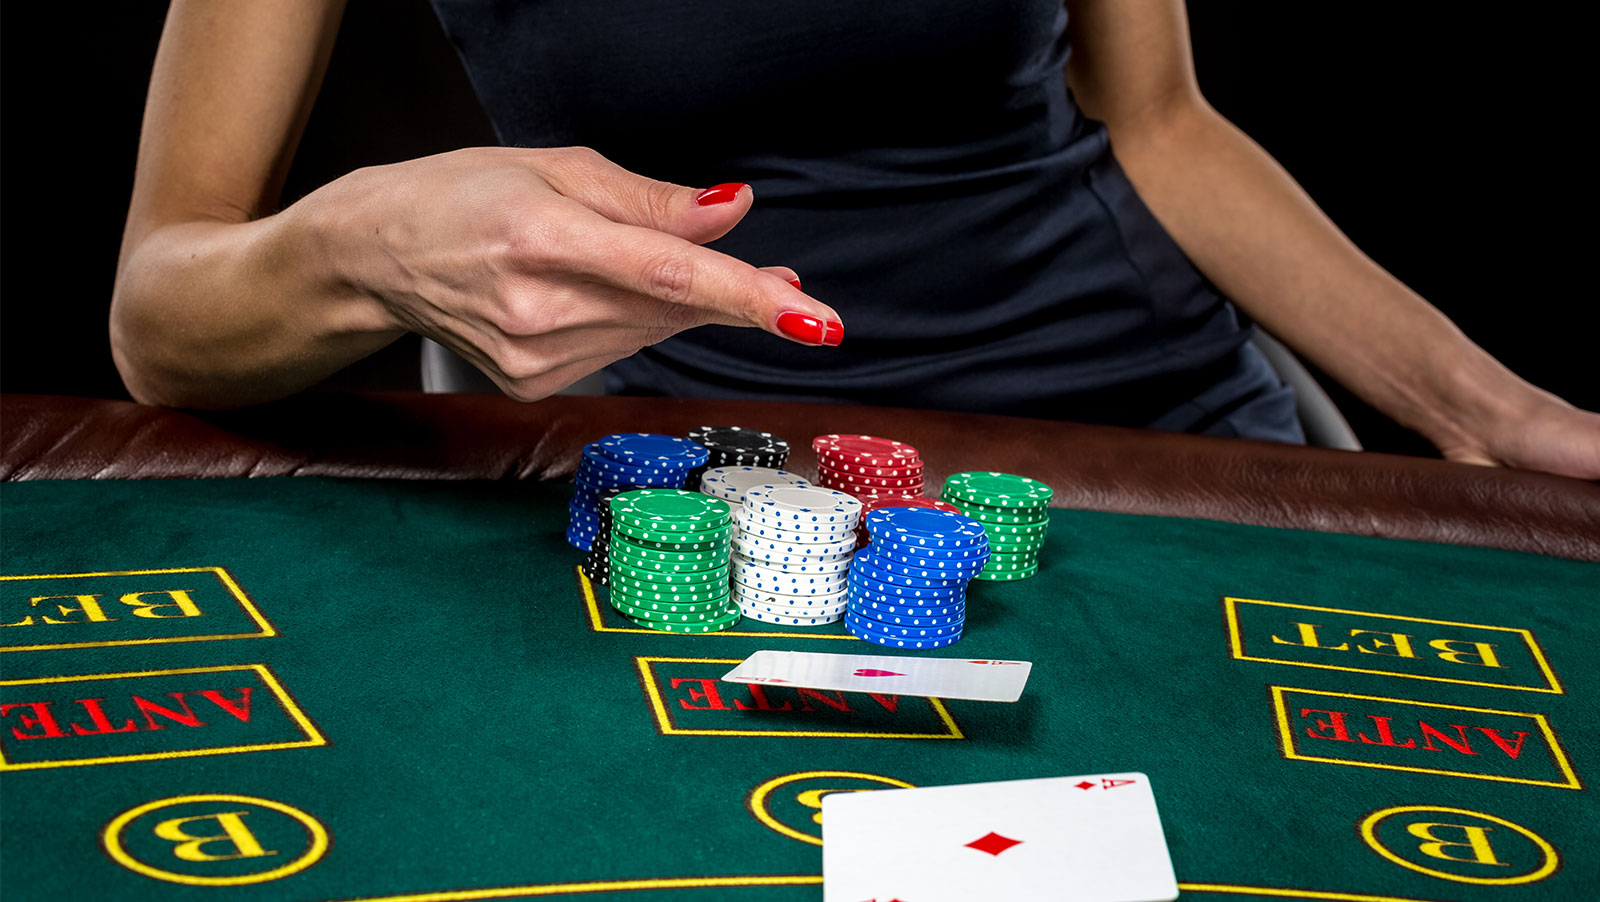 Woman charged in Las Vegas with theft of $1M from poker magazine